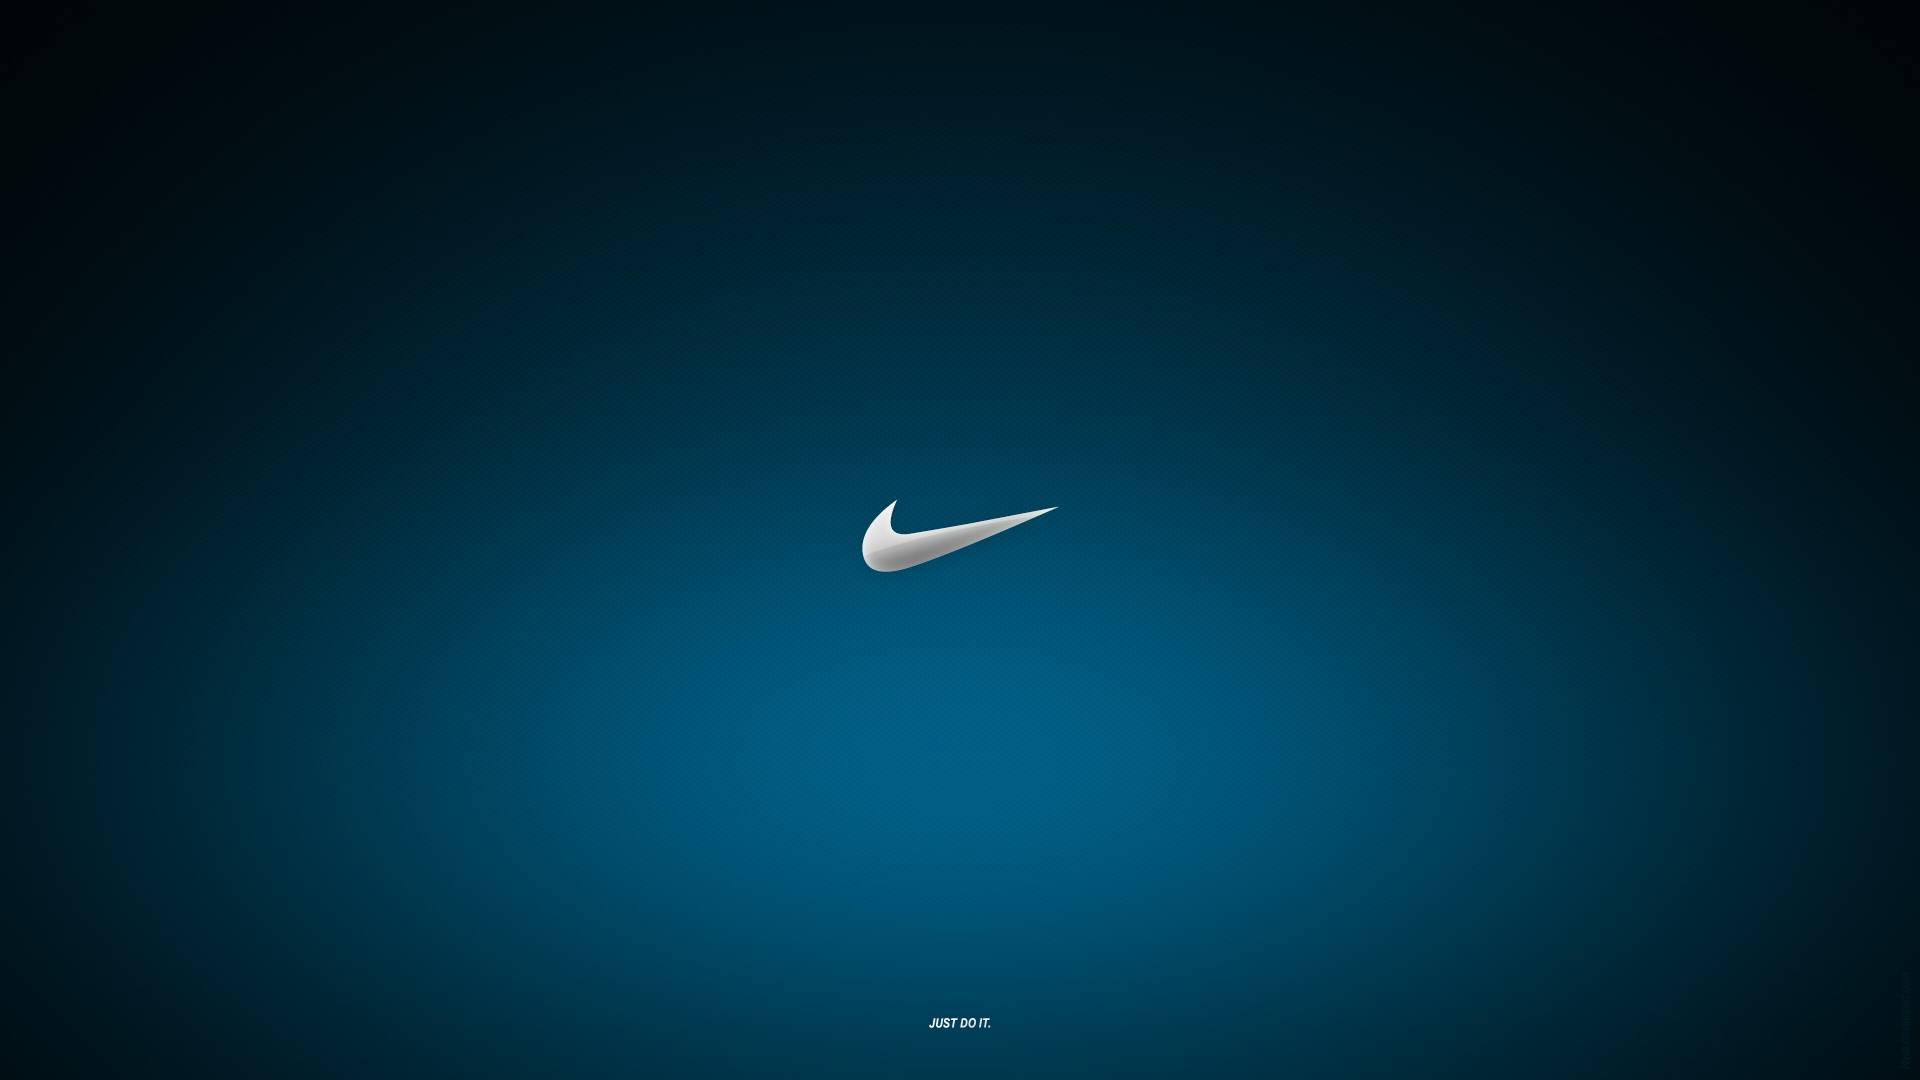 Blue Nike Wallpapers Top Free Blue Nike Backgrounds Wallpaperaccess